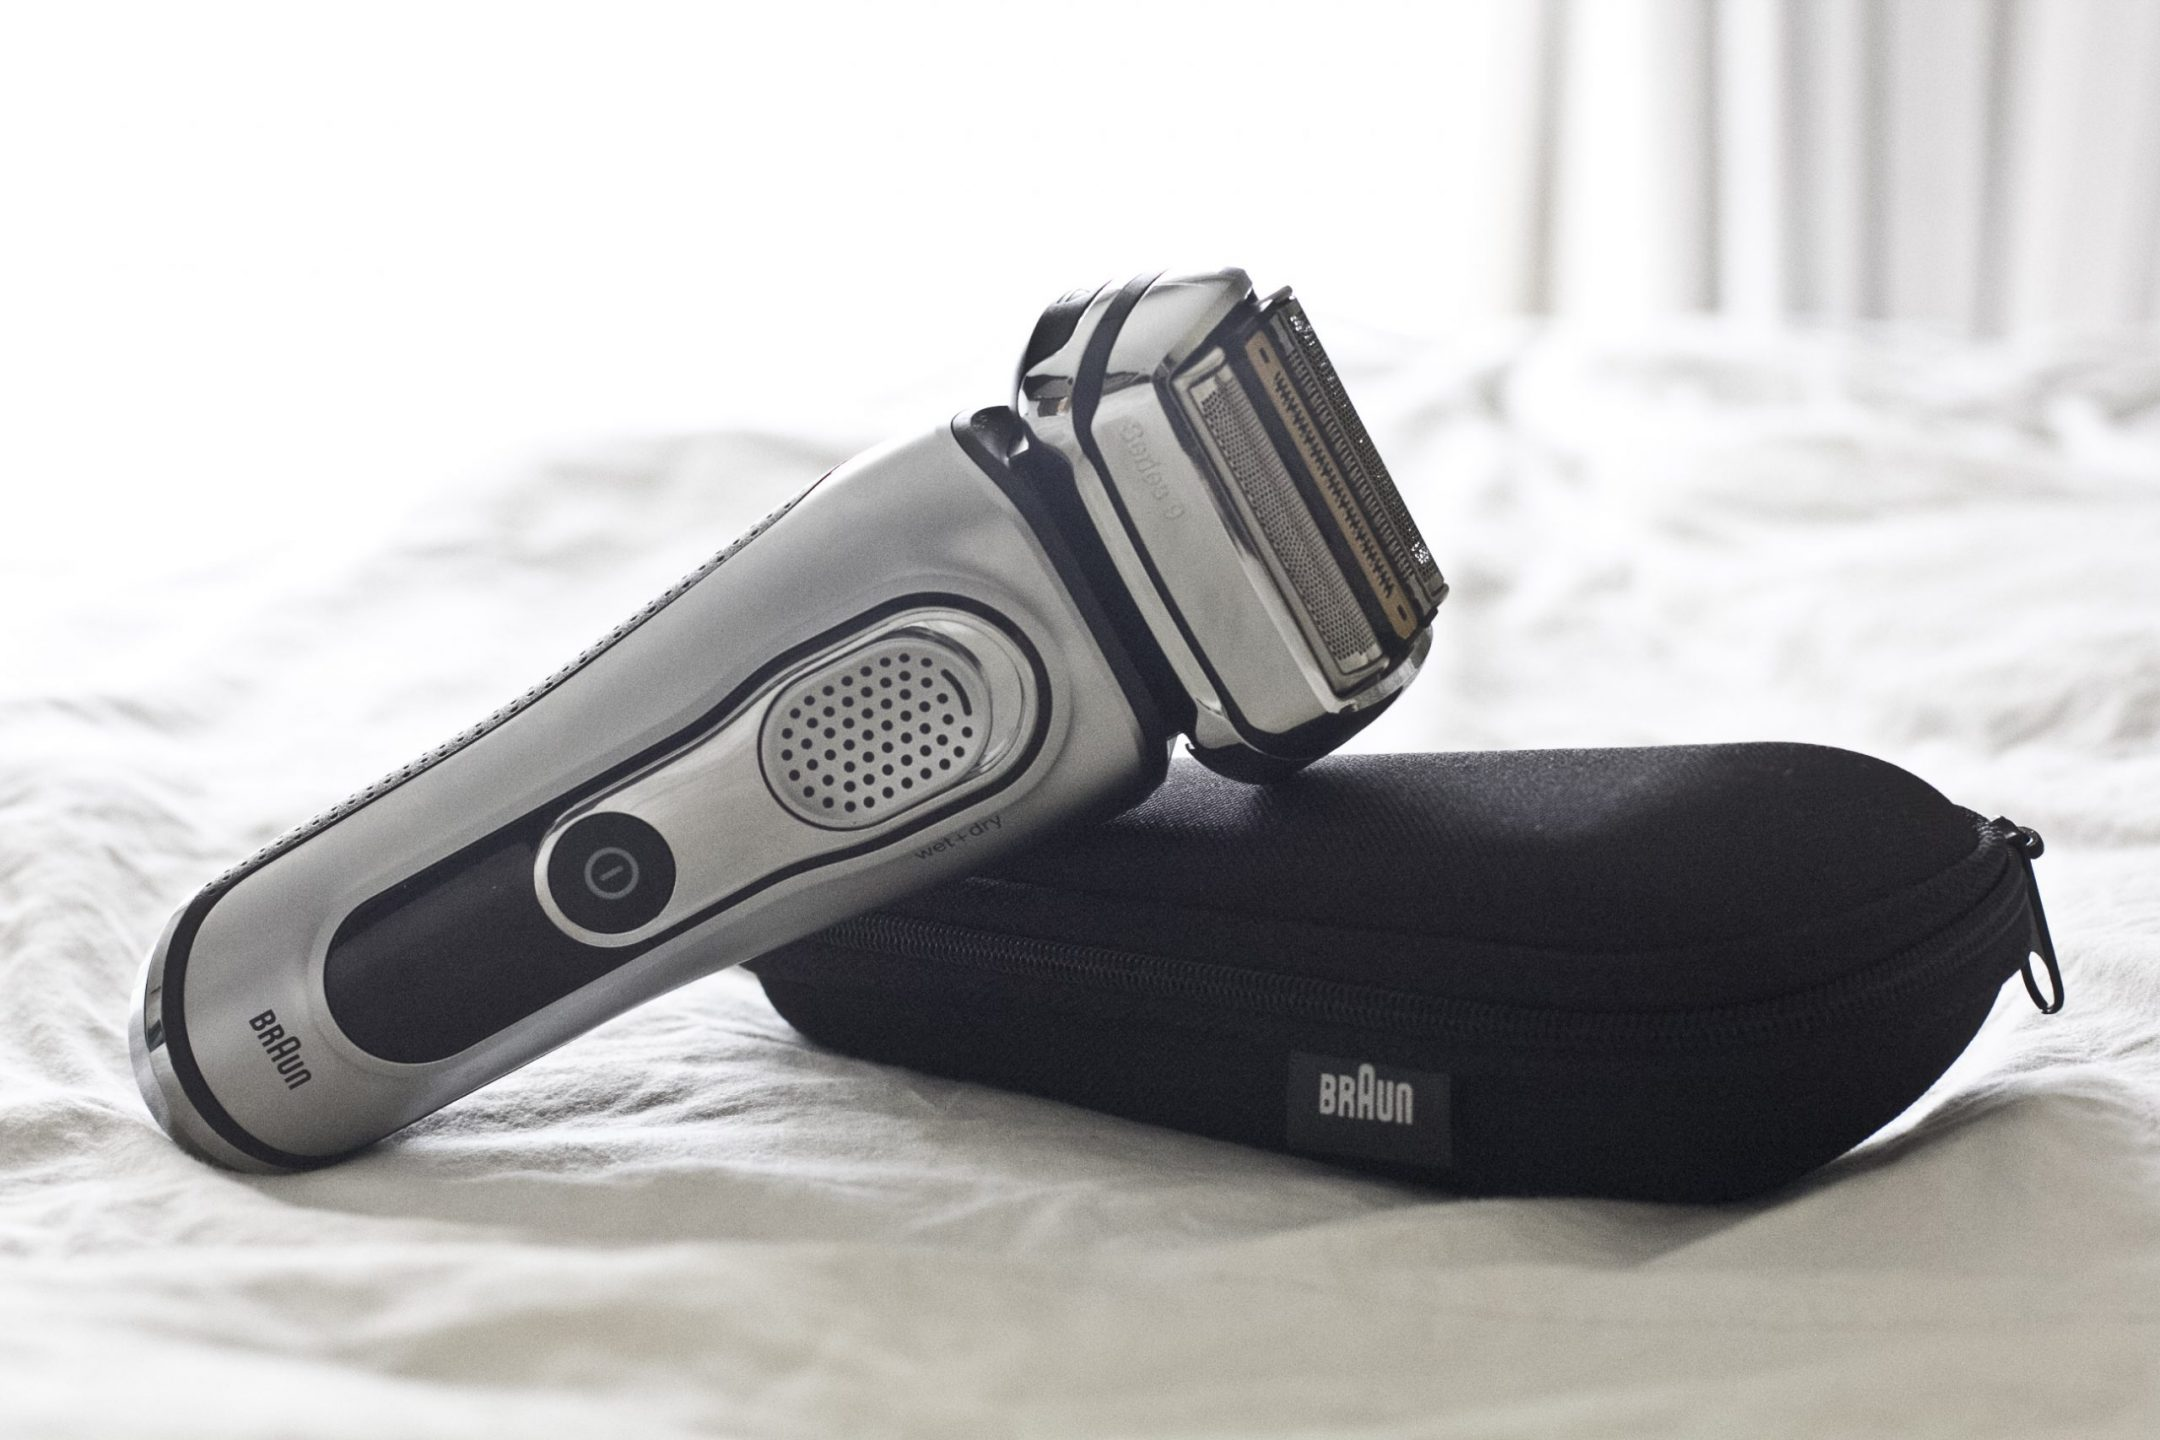 Father's Day gift guide Braun 9290cc Wet & Dry electric shaver